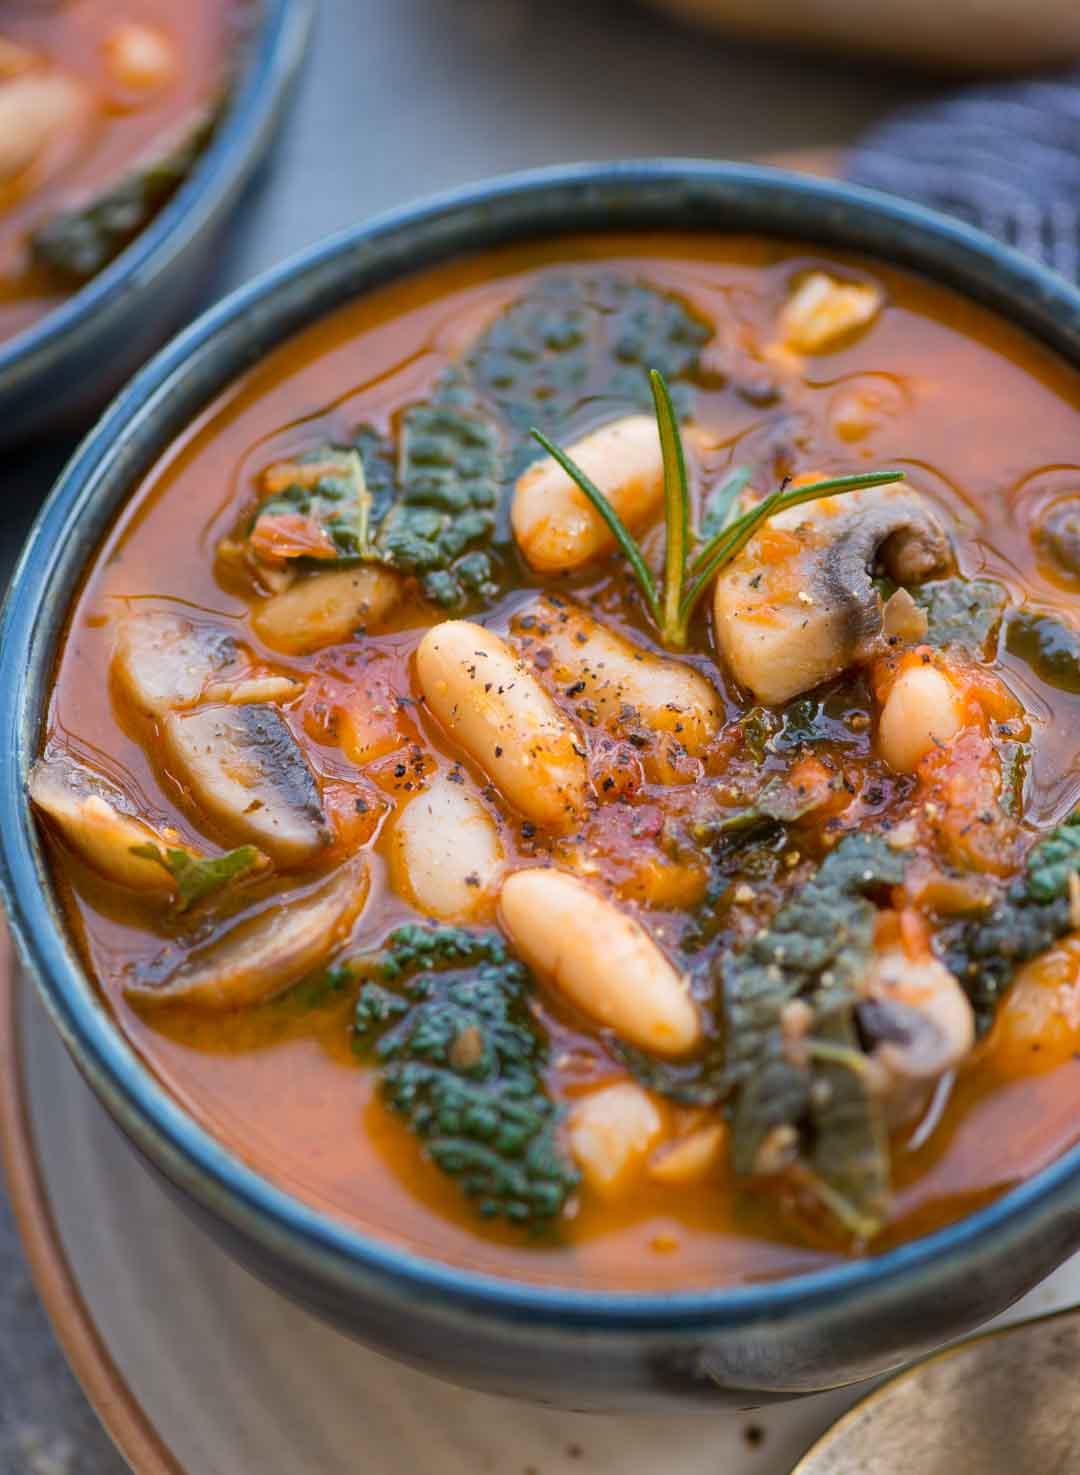 This White Bean Soup with Mushroom and Kale in Tomato based broth is so hearty and delicious. You need only one pot and 20 minutes to make this Soup. Also vegan and gluten-free.